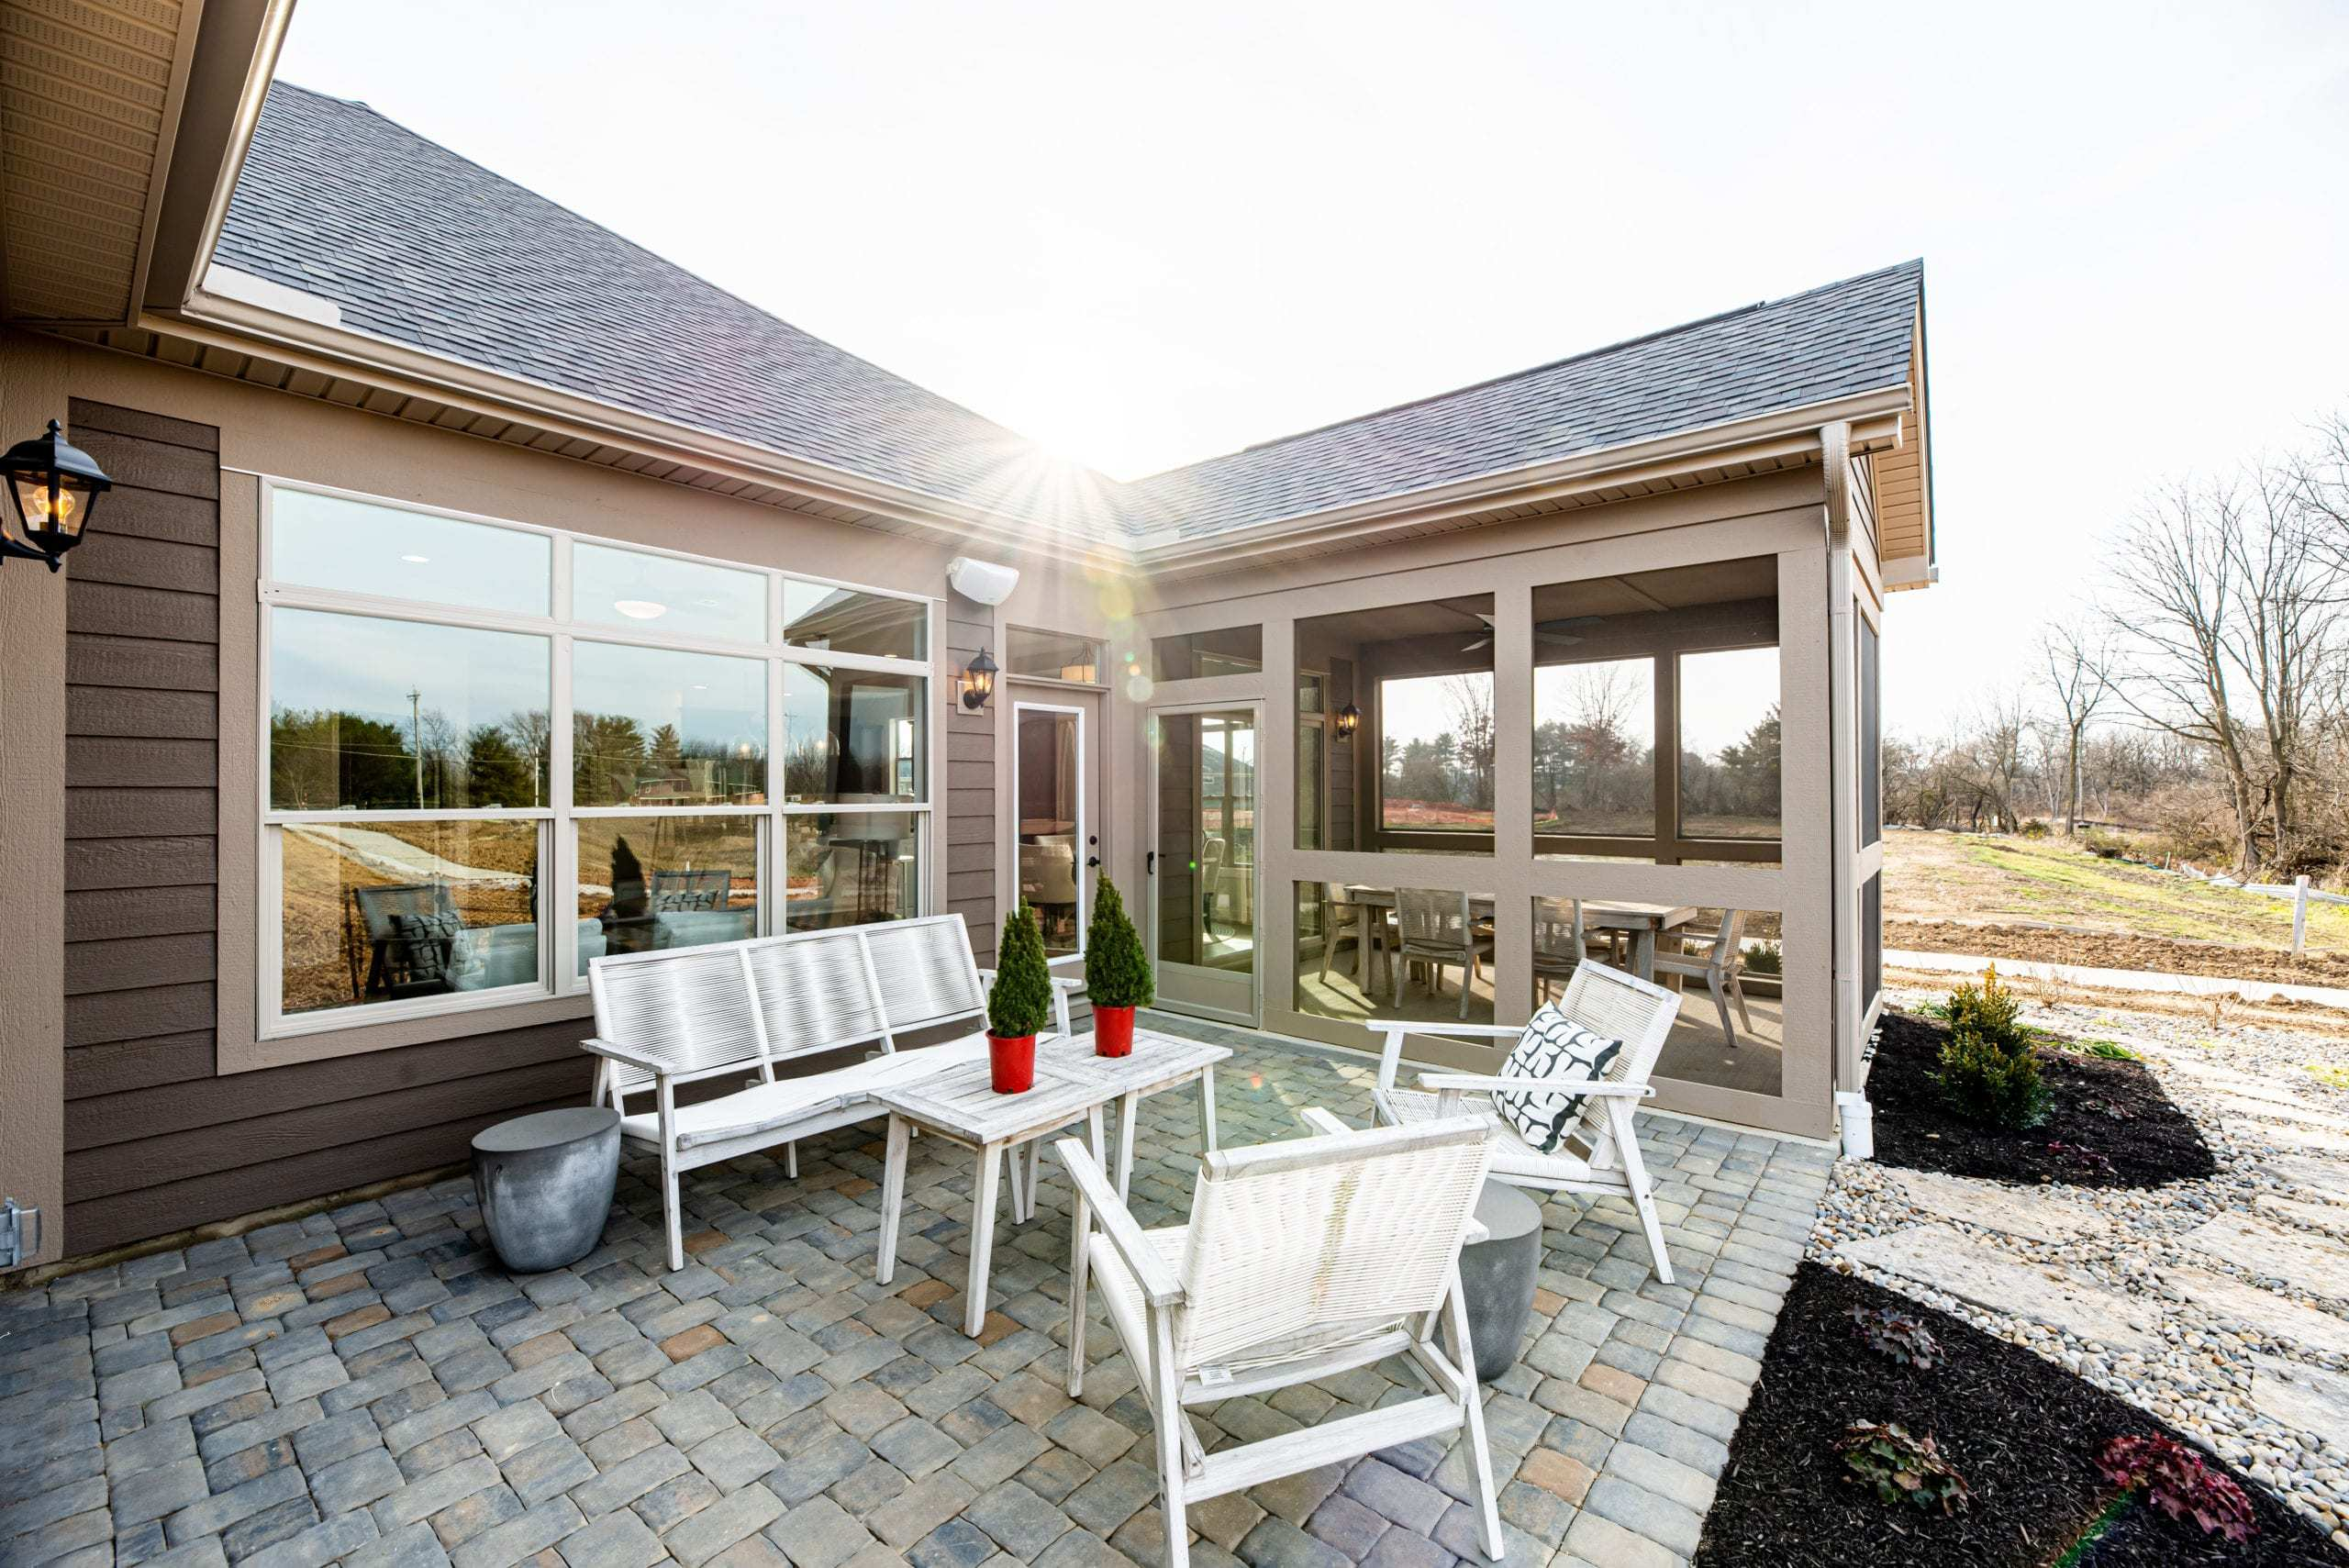 Exterior featured in the Torino II - Raleigh** By Epcon Communities